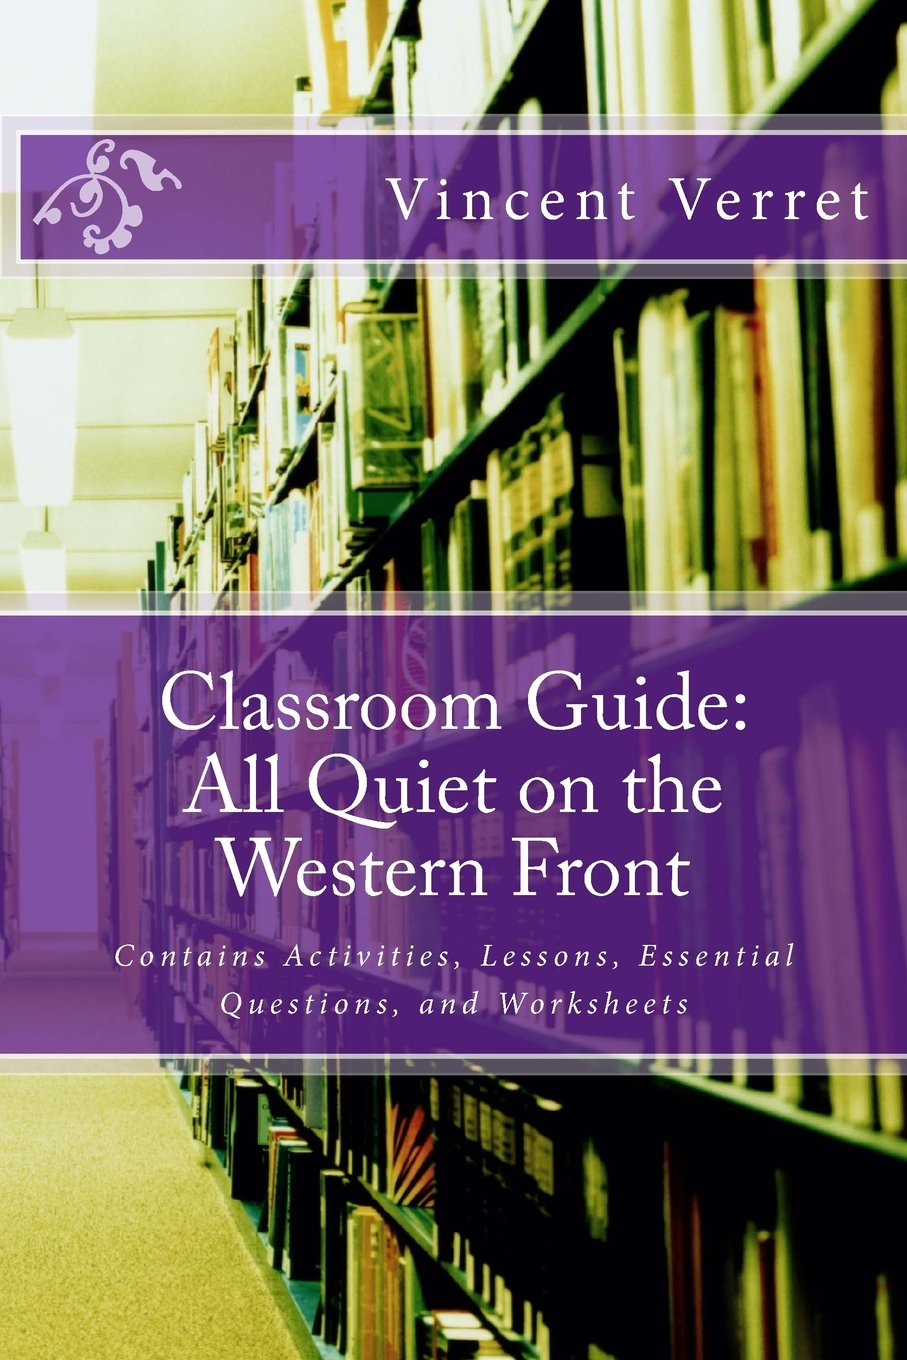 Download Classroom Guide: All Quiet on the Western Front: Contains Activities, Lessons, Essential Questions, and Worksheets (Instructional Resources for Teachers) pdf epub